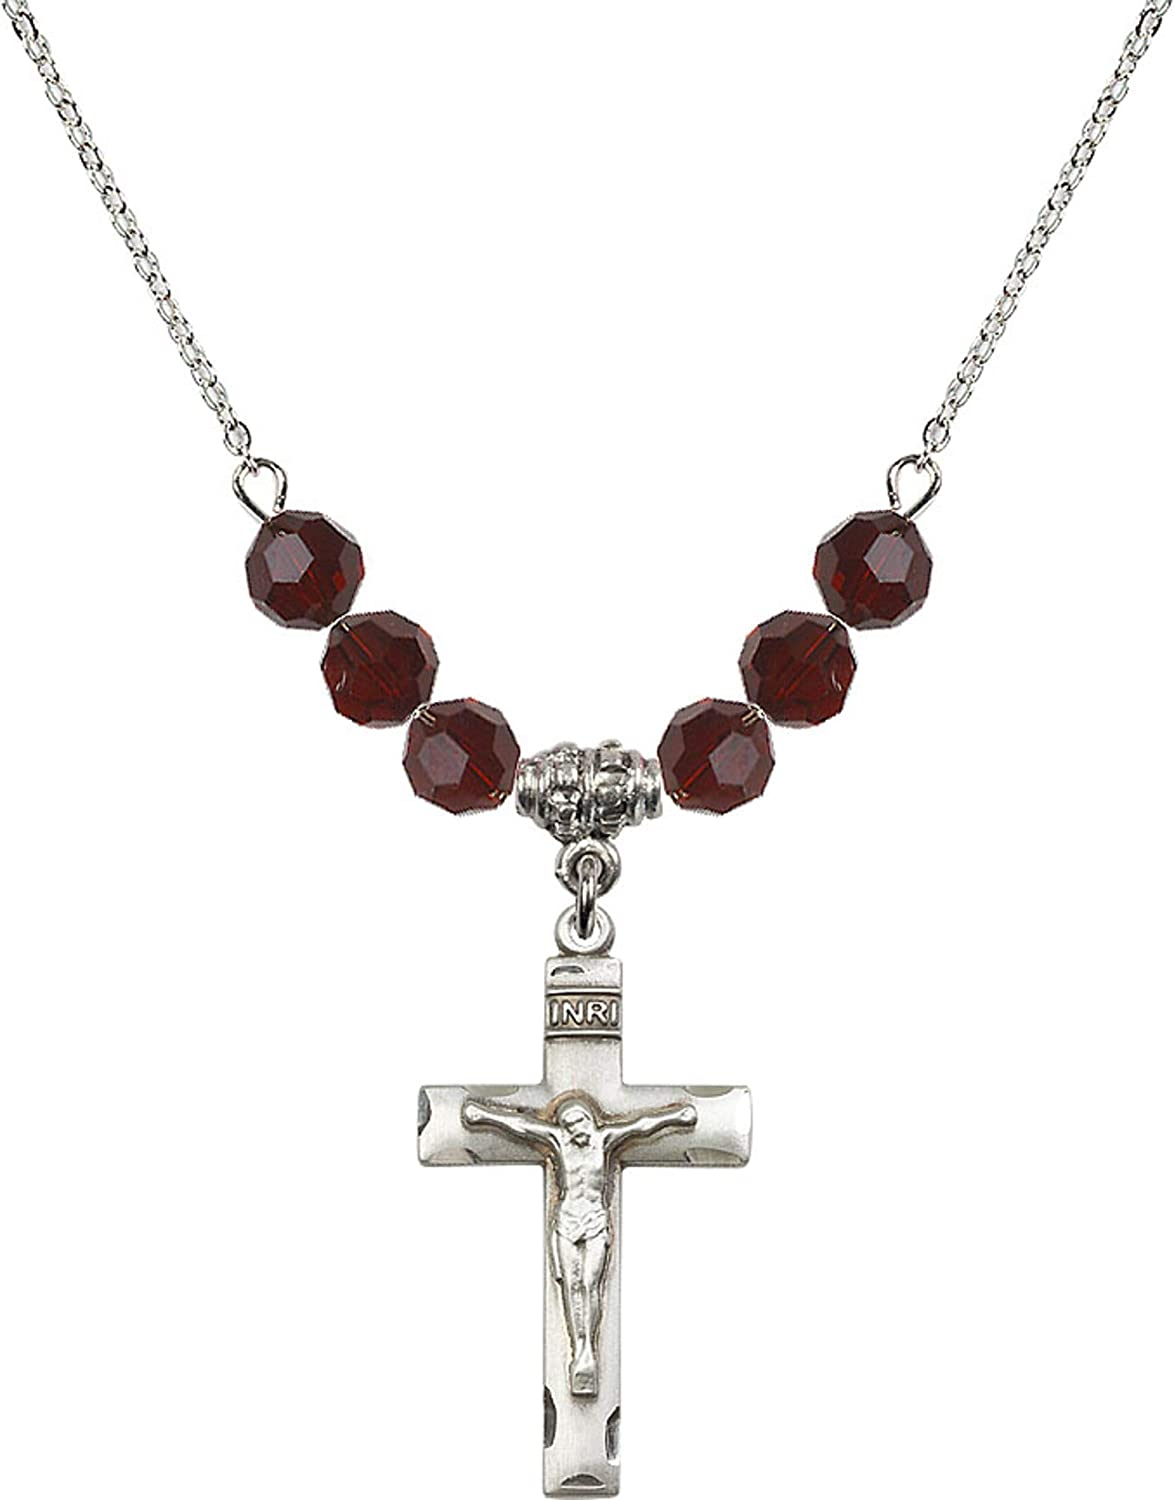 Bonyak Jewelry 18 Inch Rhodium Plated Necklace w// 6mm Red January Birth Month Stone Beads and Crucifix Charm